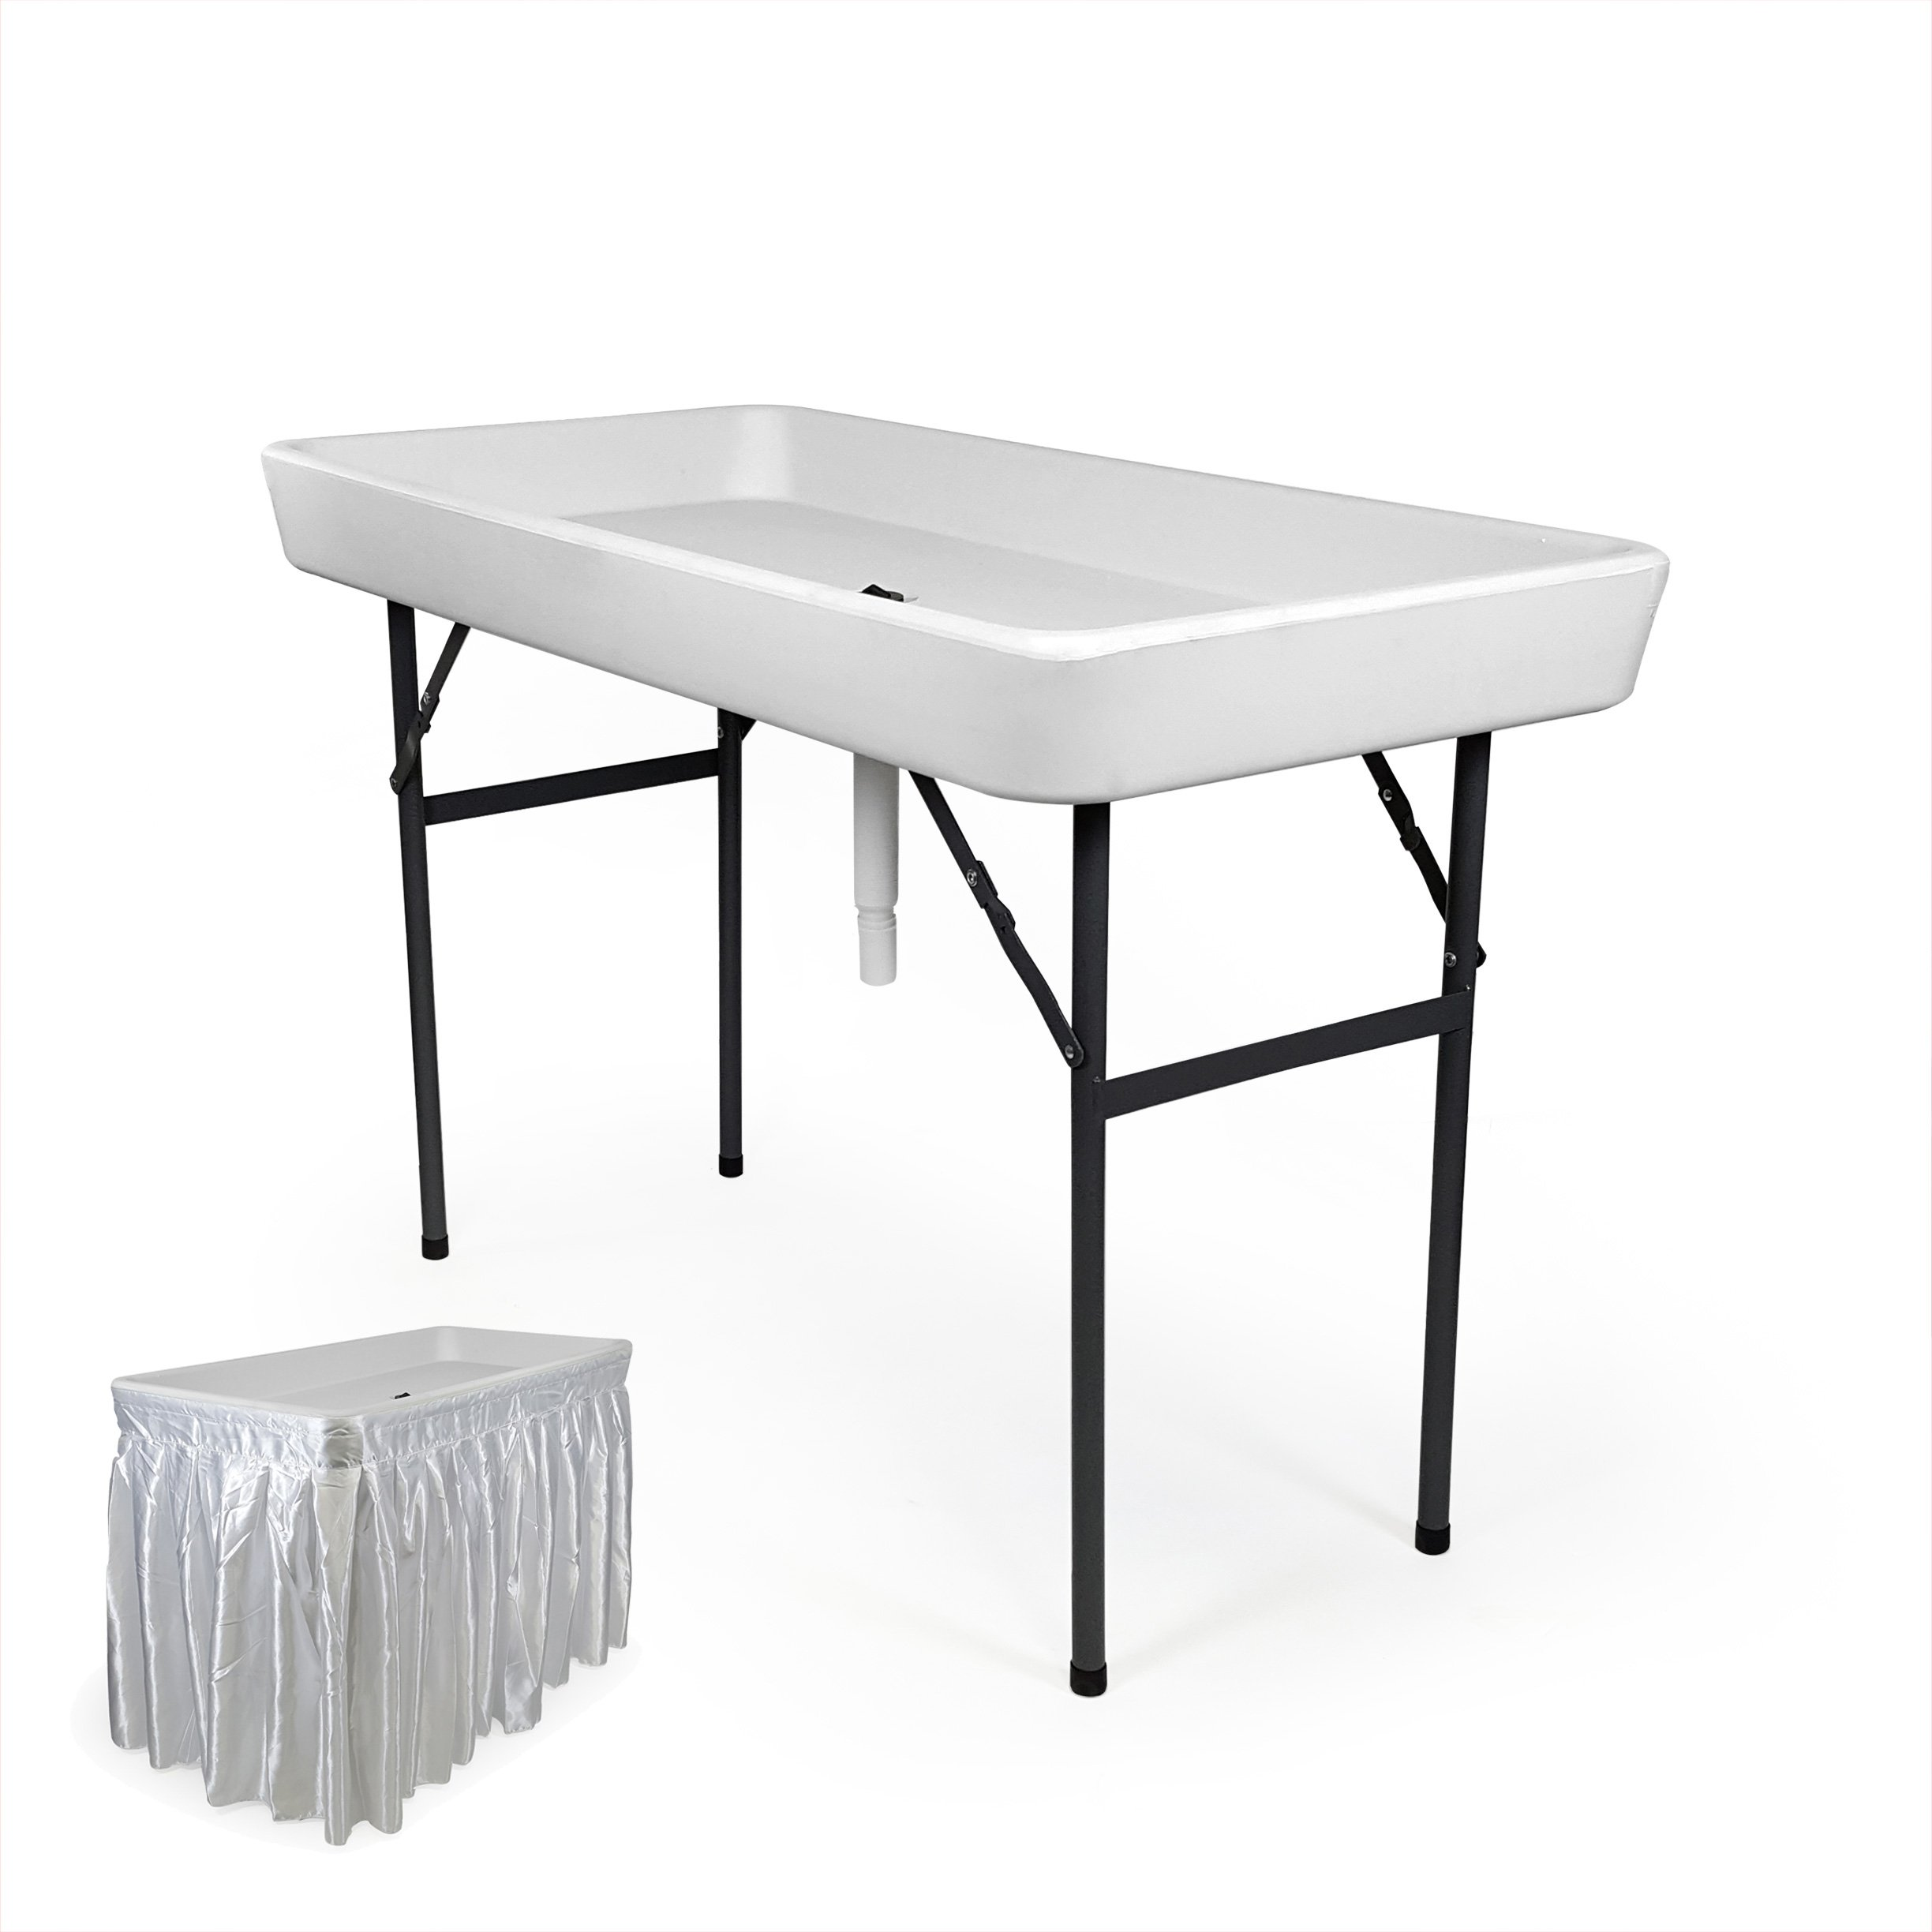 6 Foot Cooler Ice Table Party Ice Folding Table with Matching Skirt - White